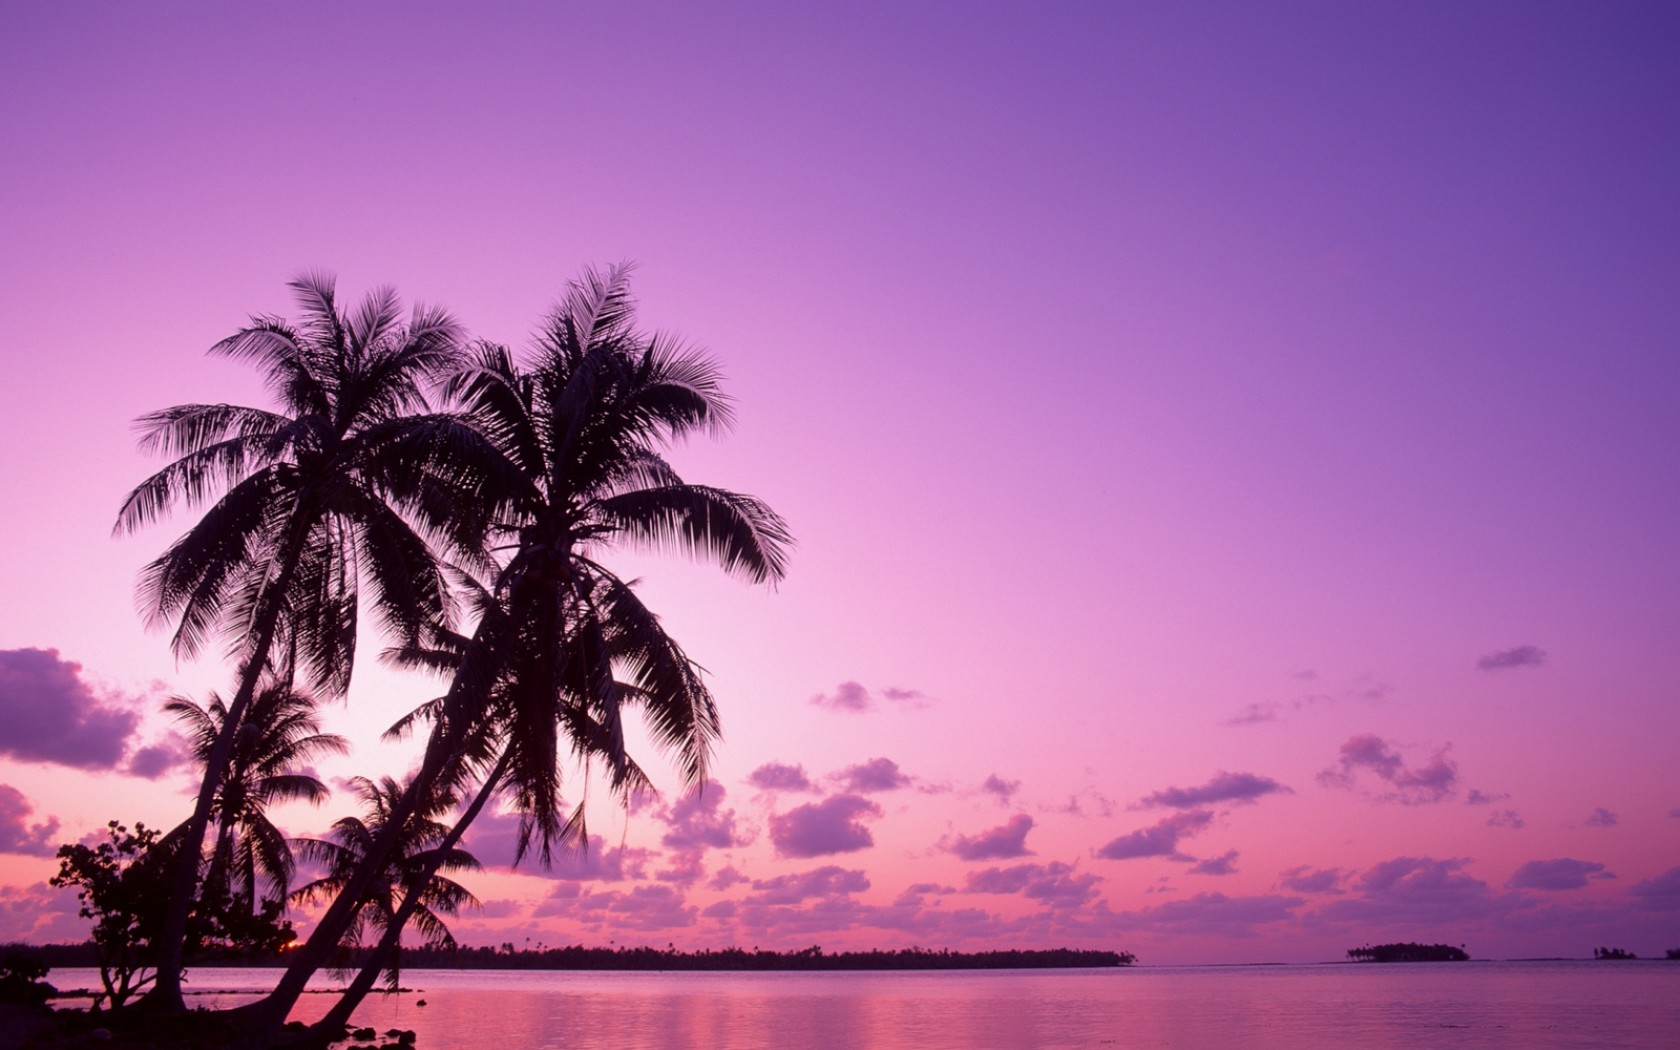 Pink Sunset Backgrounds HD wallpaper background 1680x1050